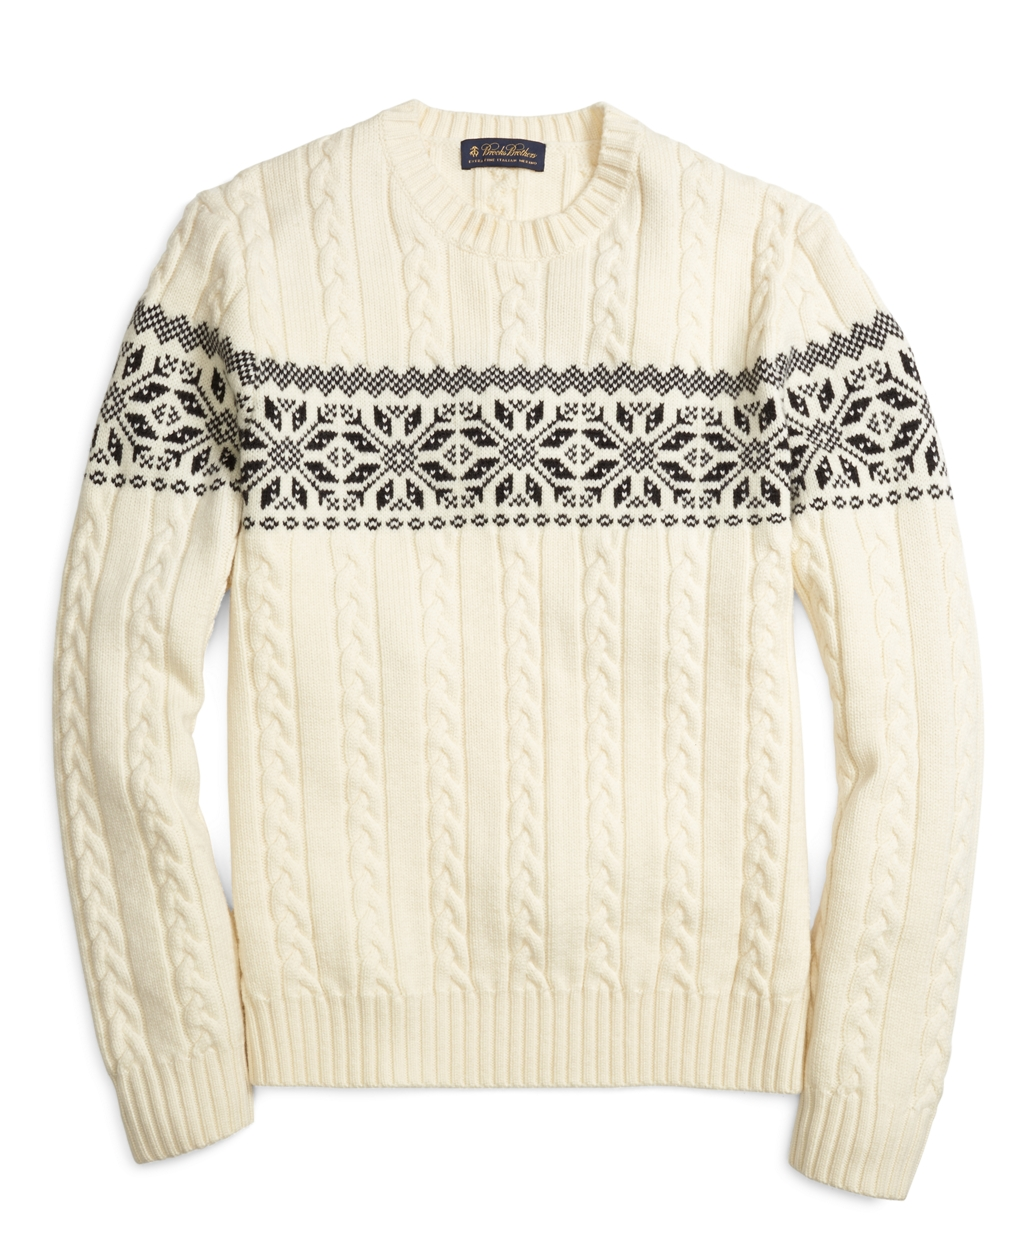 Men's Merino Wool Ivory Fair Isle Snowflake Crewneck Sweater ...